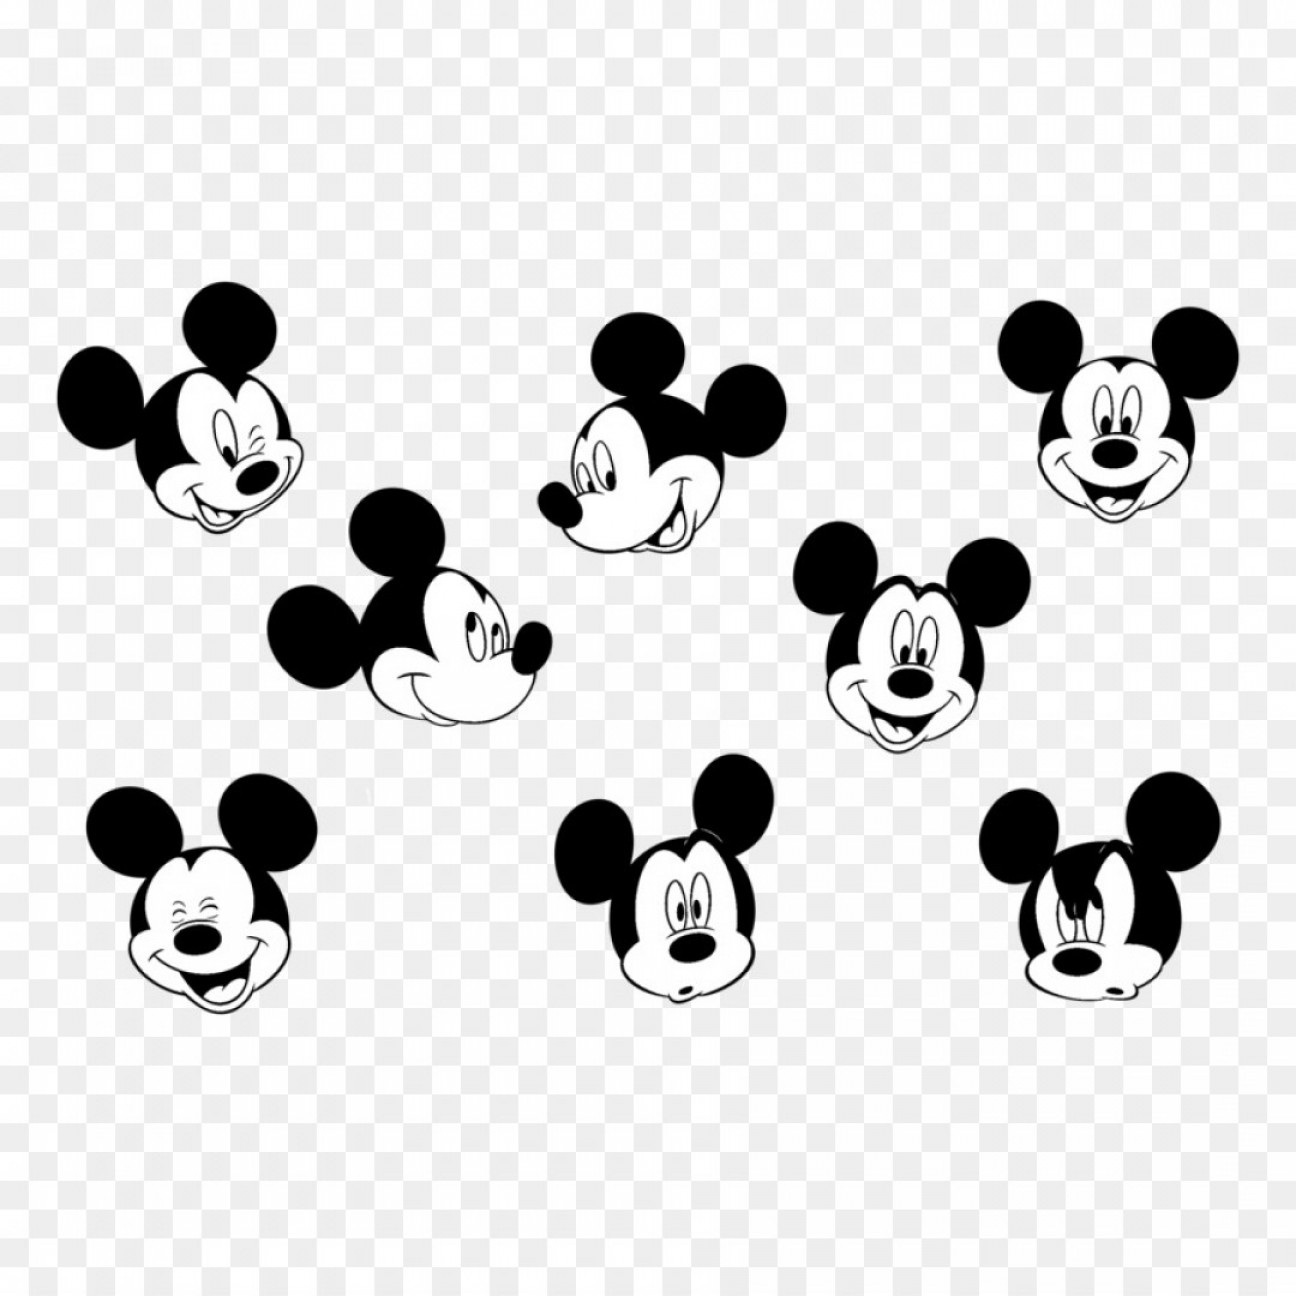 Minnie Vector Black And White: Png Mickey Mouse Minnie Mouse Vector Graphics Image Cl